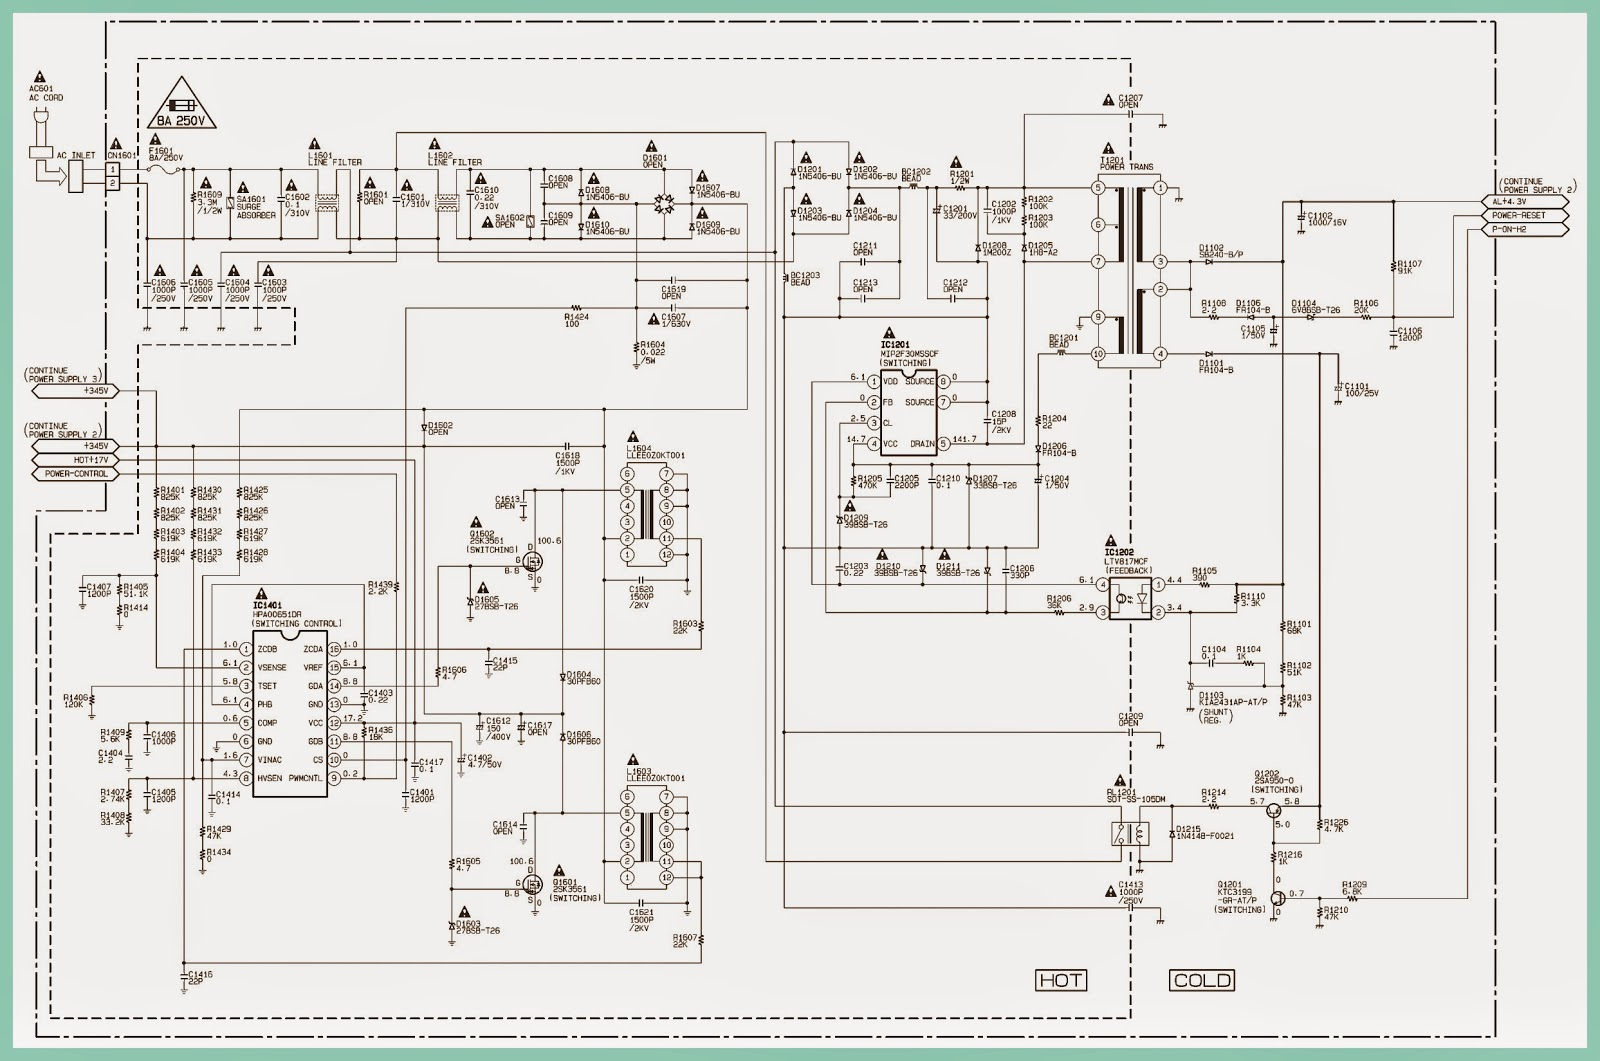 Magnavox Sylvania And Emerson 40 Inch Lcd Tvs Service Mode Plug Wiring Diagram Circuit Are Not Defective Before You Connect The Ac To Power Supply Otherwise It May Cause Some Components In Fail